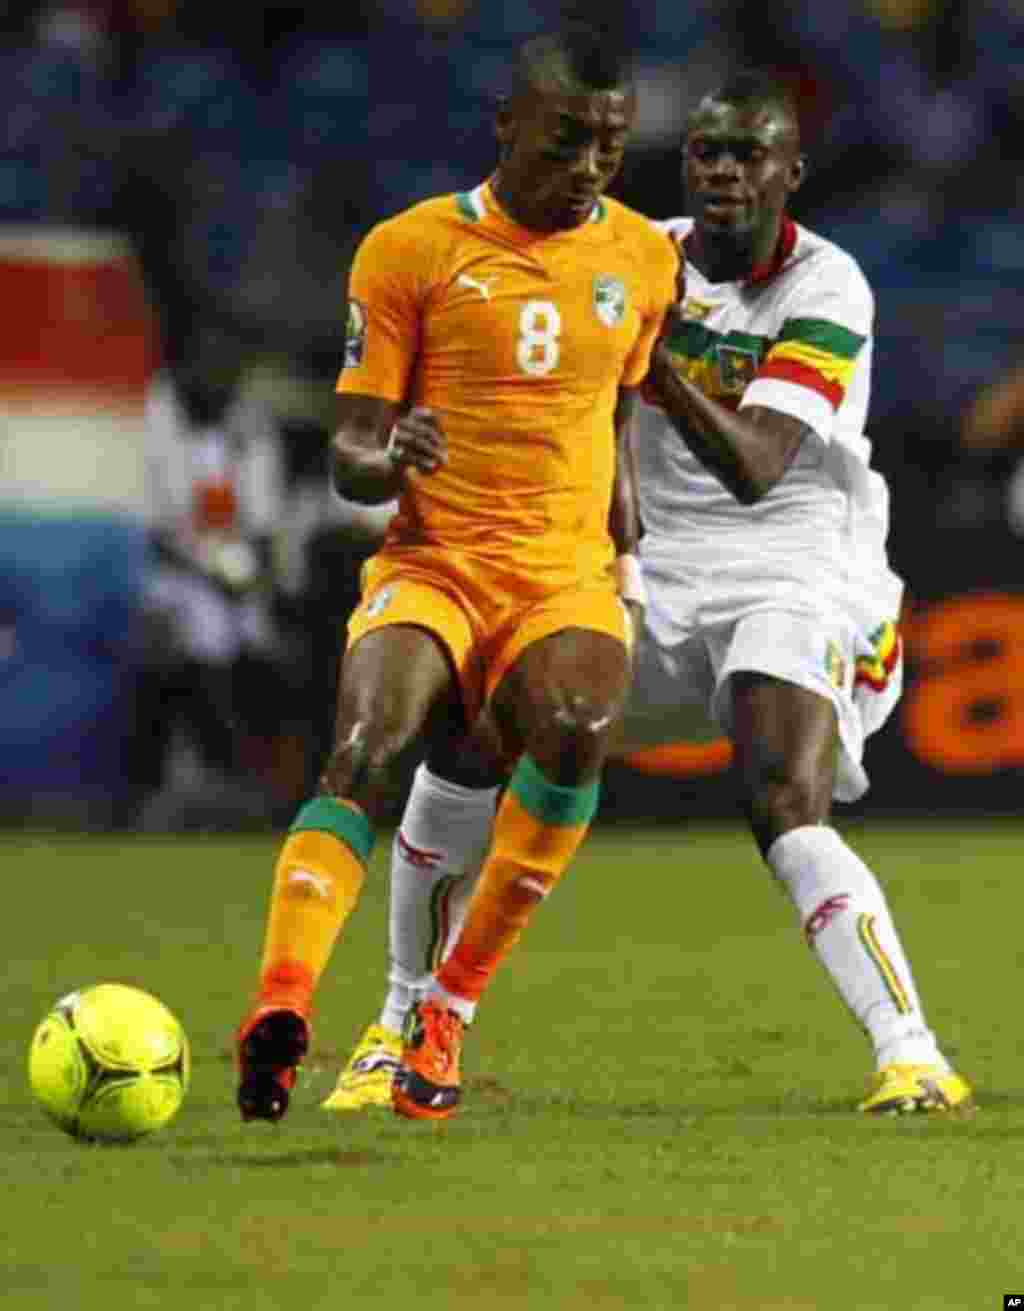 Ivory Coast's Salomon Kalou (8) plays against Mali's Mustapha Yatabare during their African Nations Cup semi-final soccer match at the Stade De L'Amitie Stadium in Gabon's capital Libreville February 8, 2012.